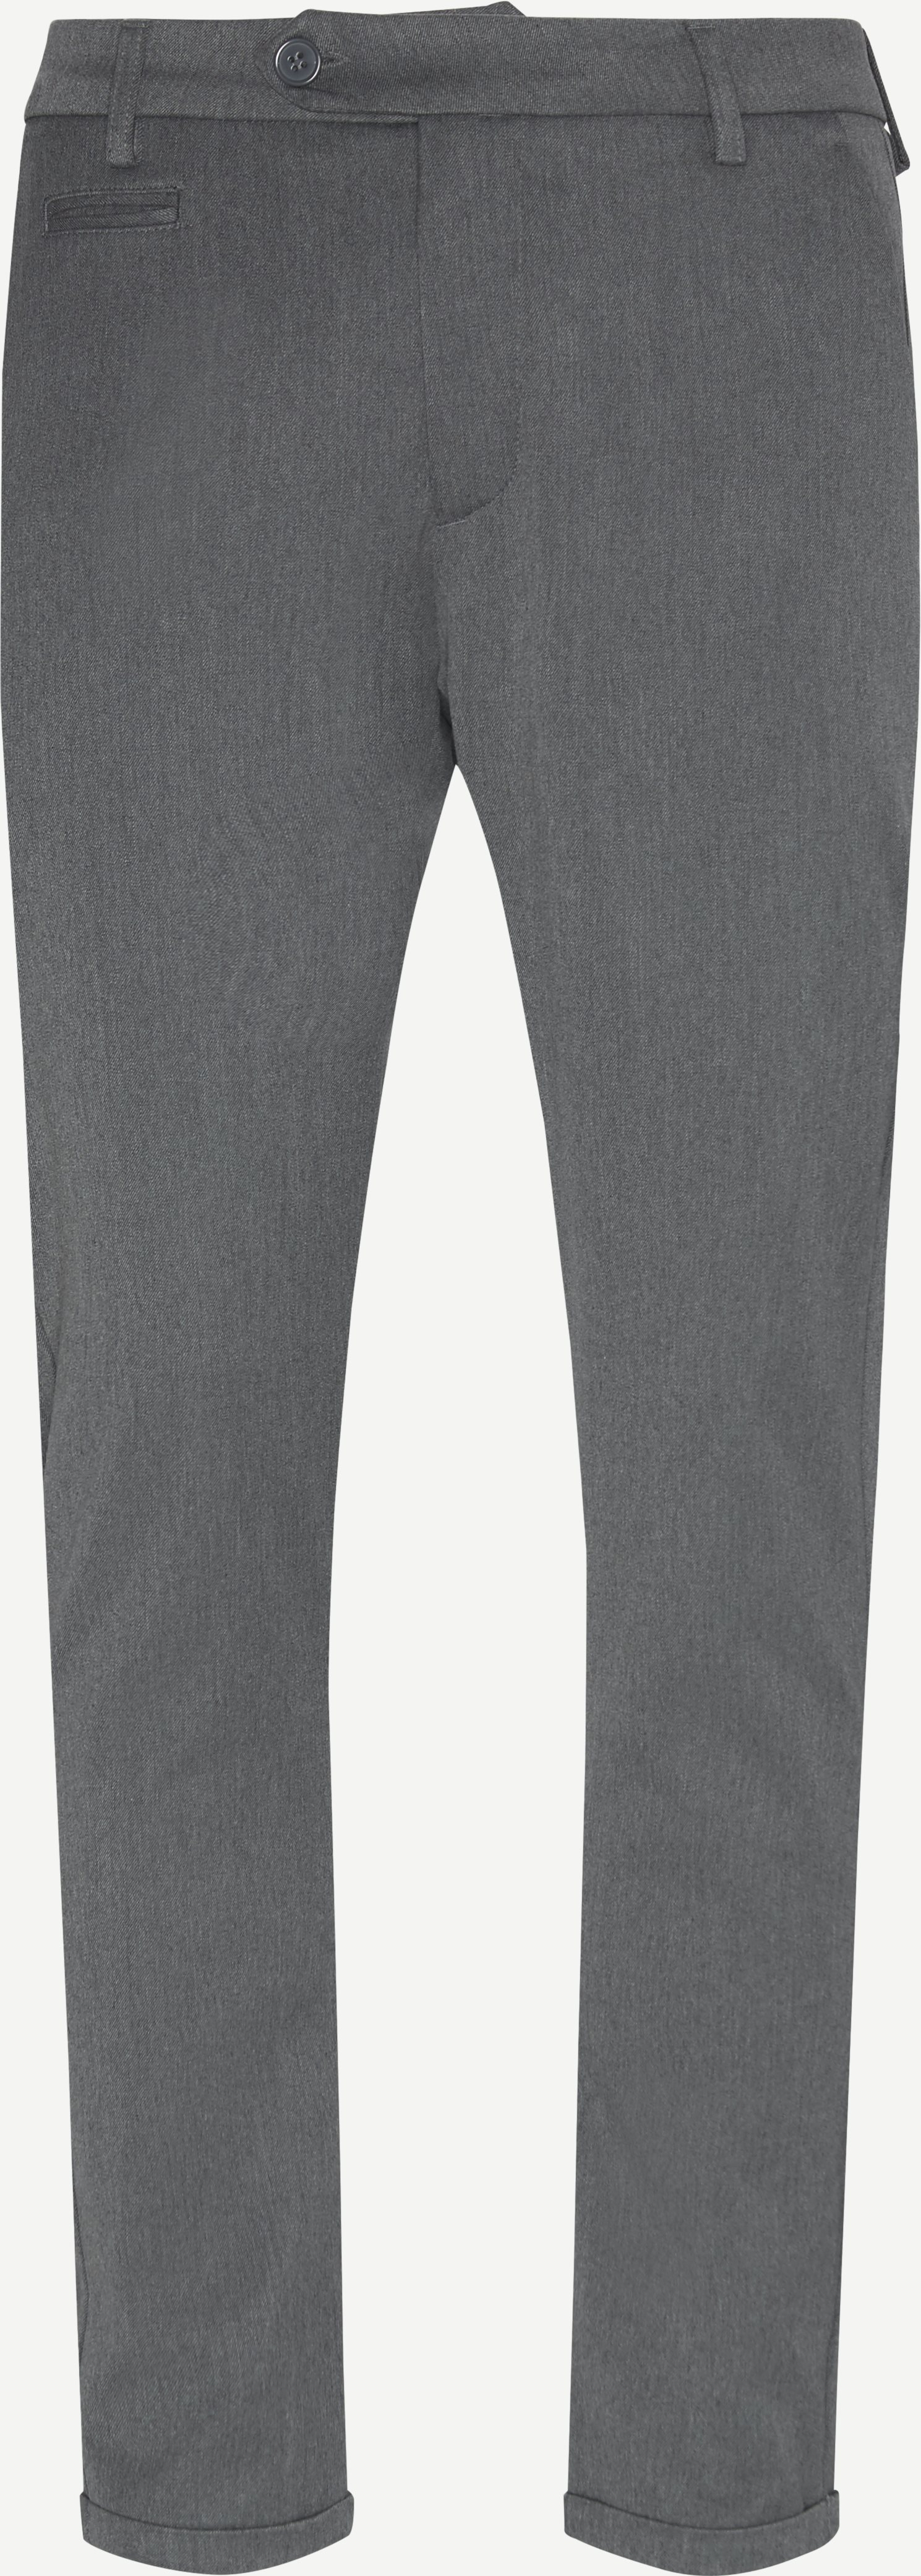 Trousers - Slim fit - Grey